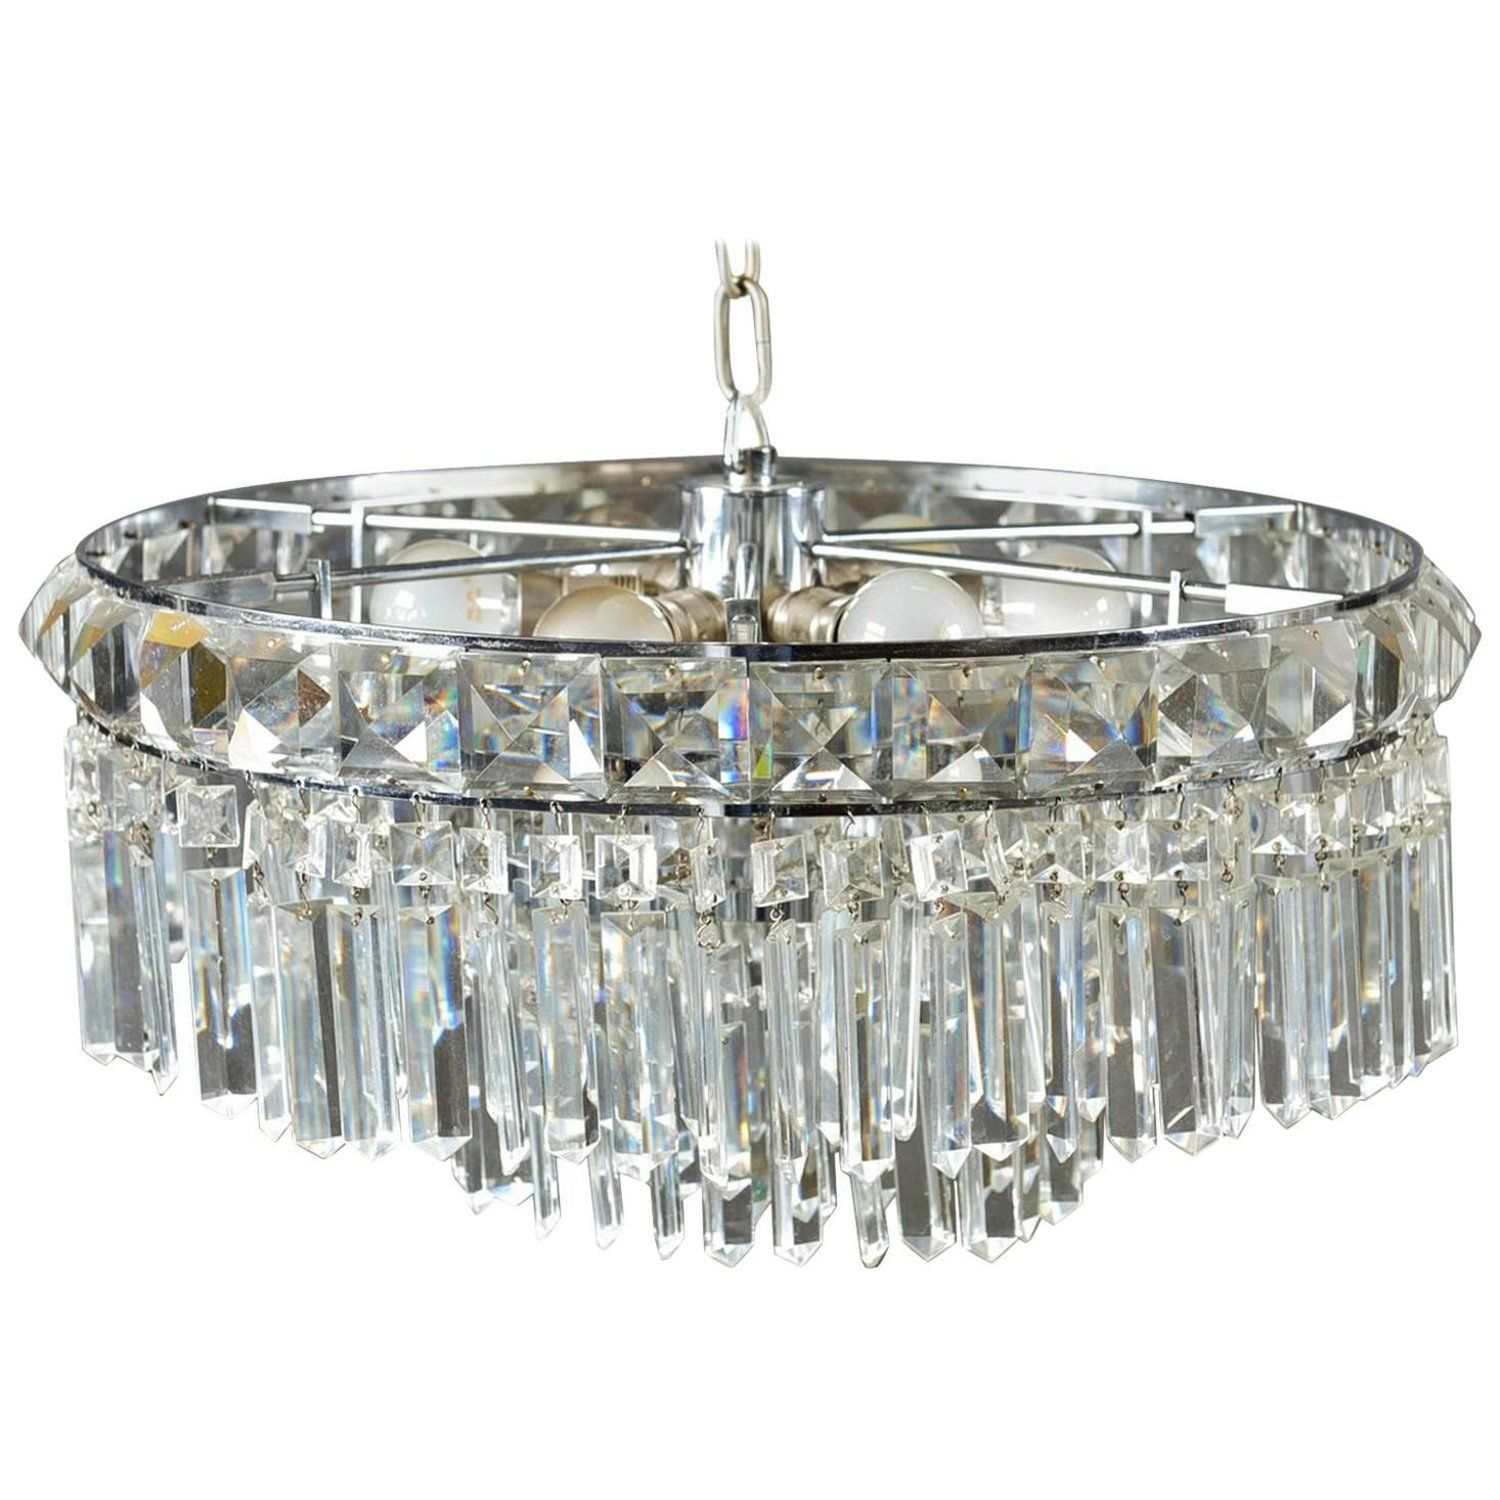 Cat crystal chandelier from the s chandelier pinterest